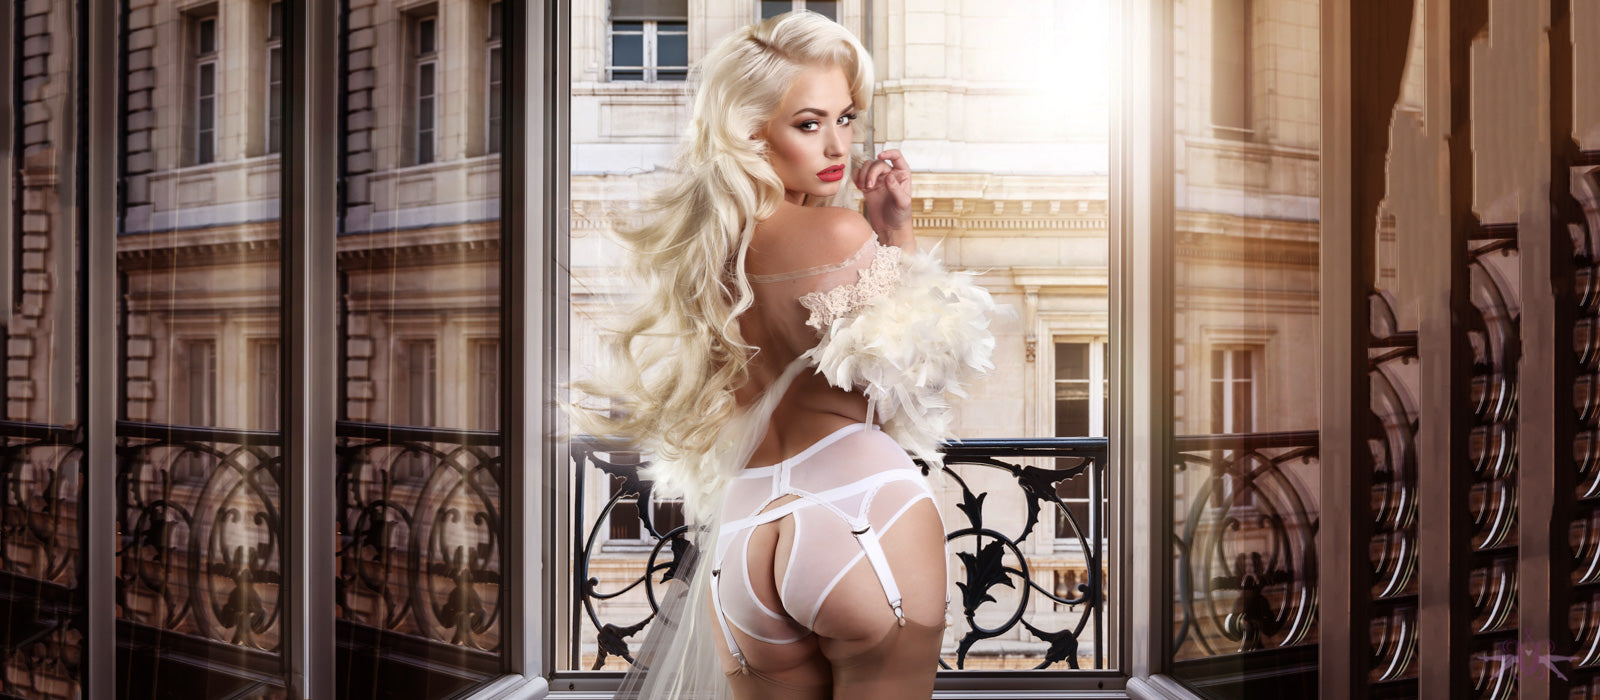 Open and crotchless lingerie and tights from Mayfair Stockings